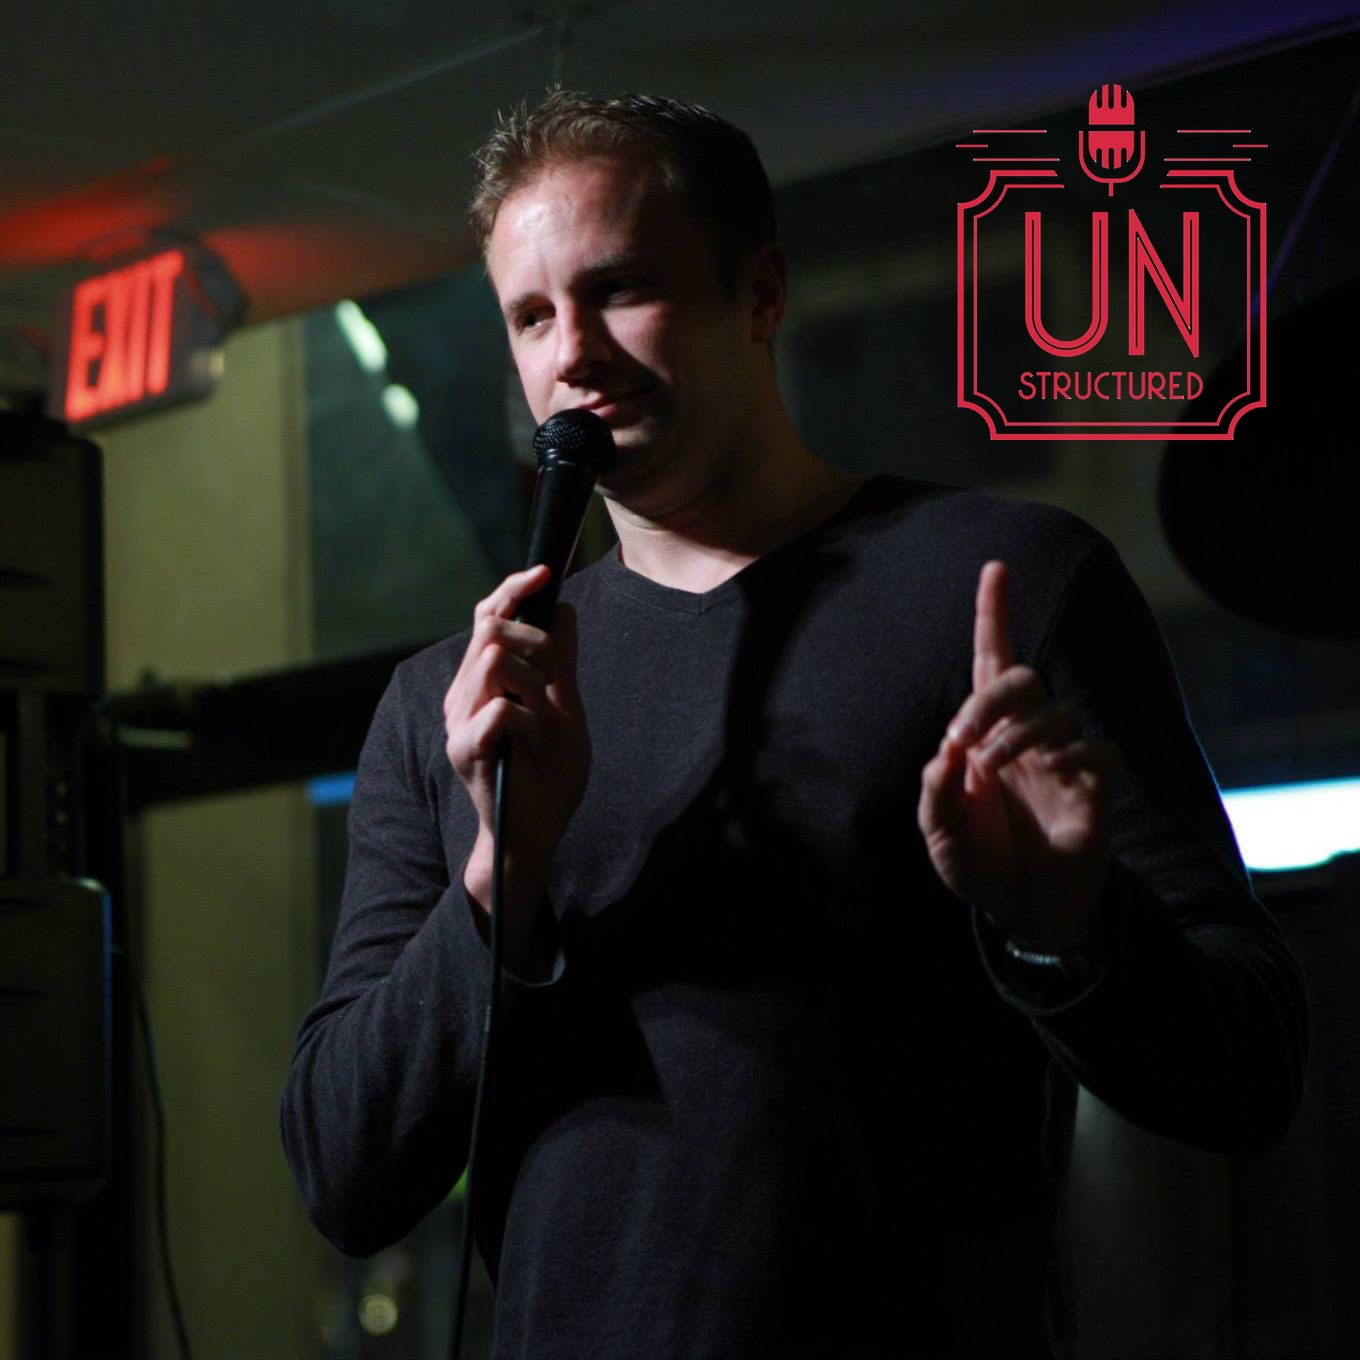 035 - Kevin Gootee - Unique wide-ranging and well-researched unstructured interviews hosted by Eric Hunley UnstructuredPod Dynamic Informal Conversations